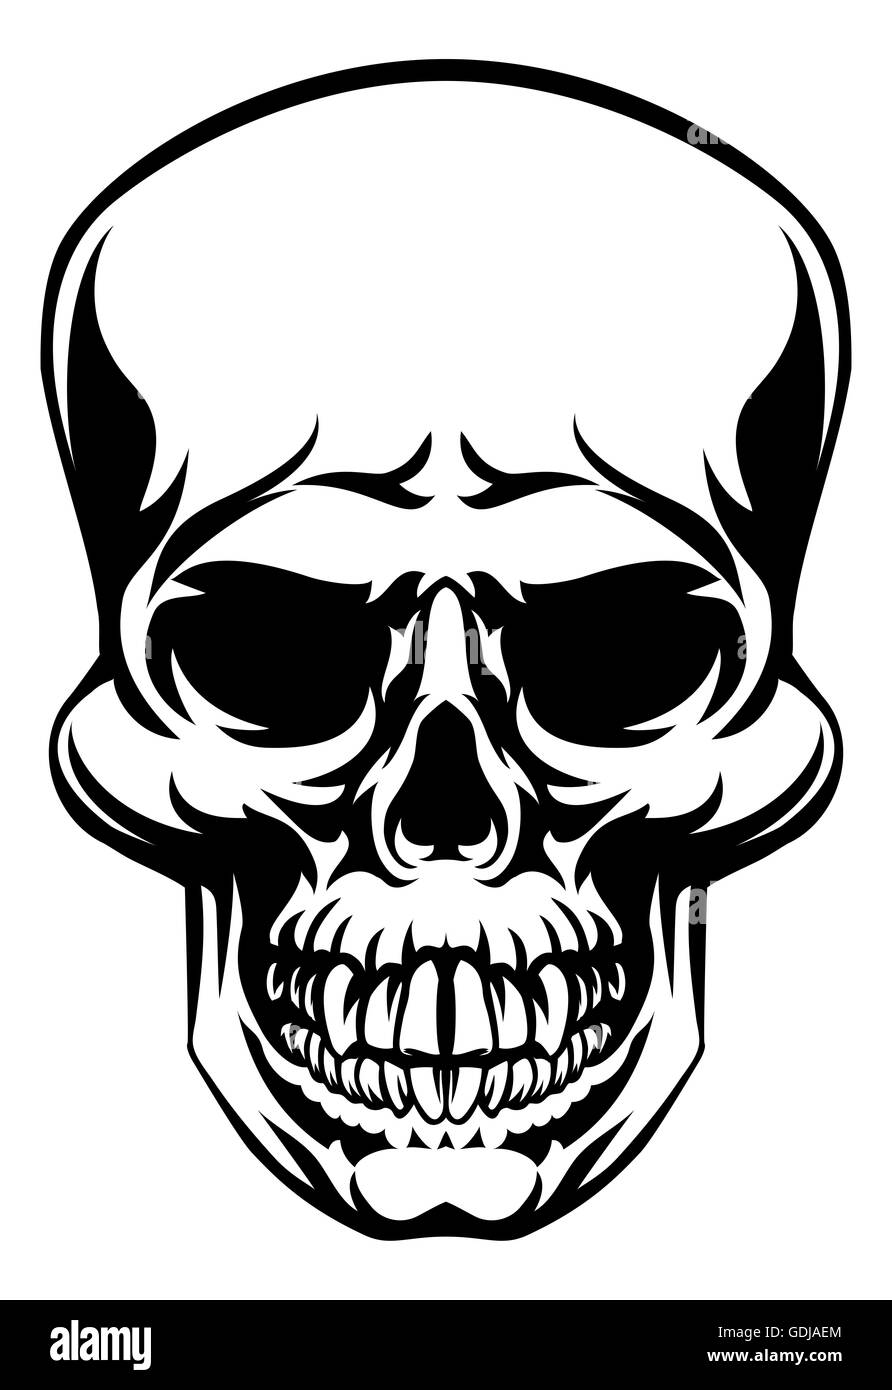 a skull scary skull design drawing stock photo royalty